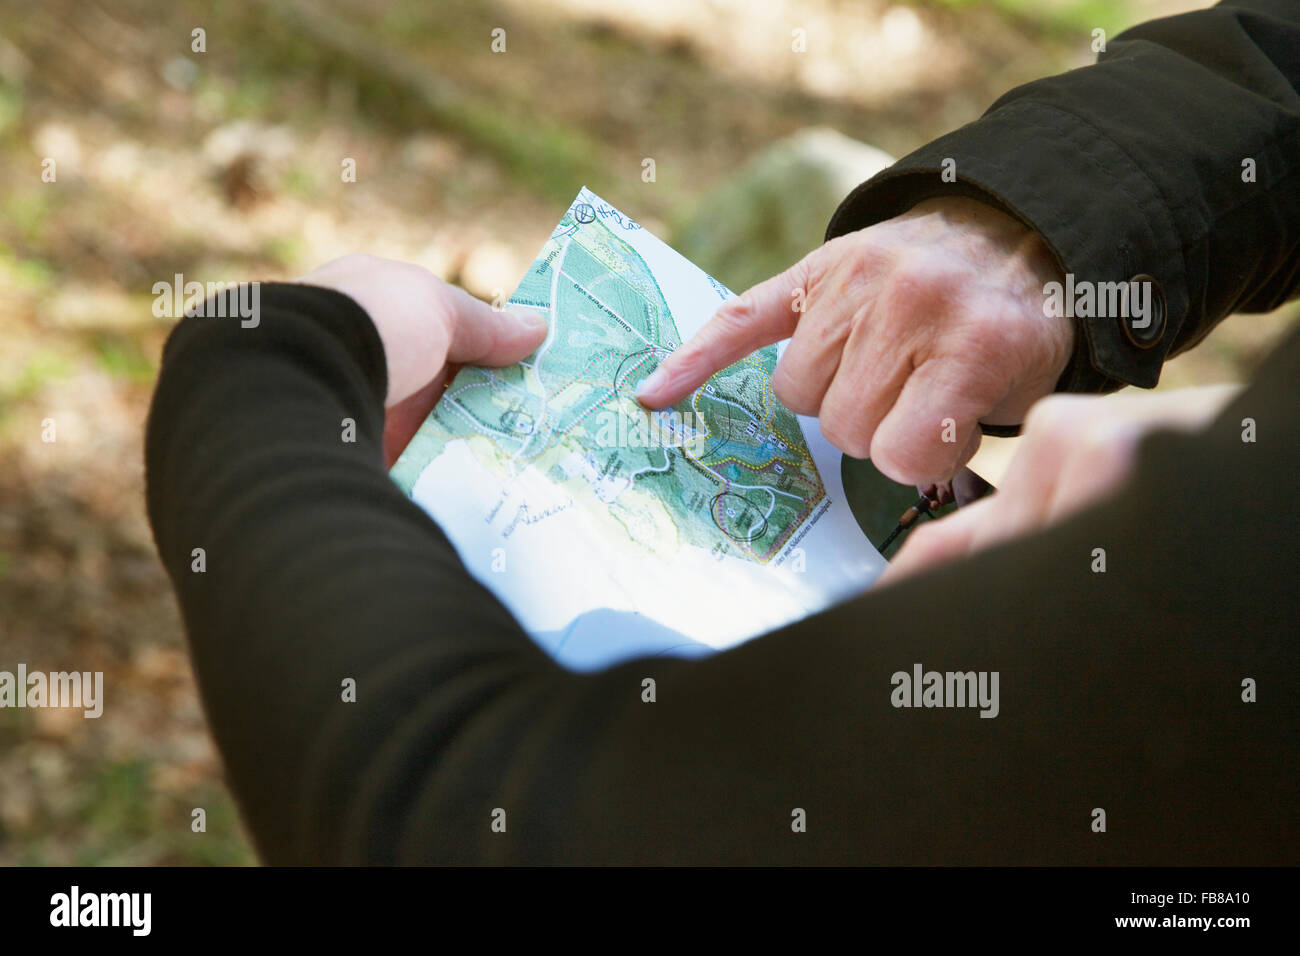 Sweden, Skane, Soderasen, Hand pointing at map in national park - Stock Image